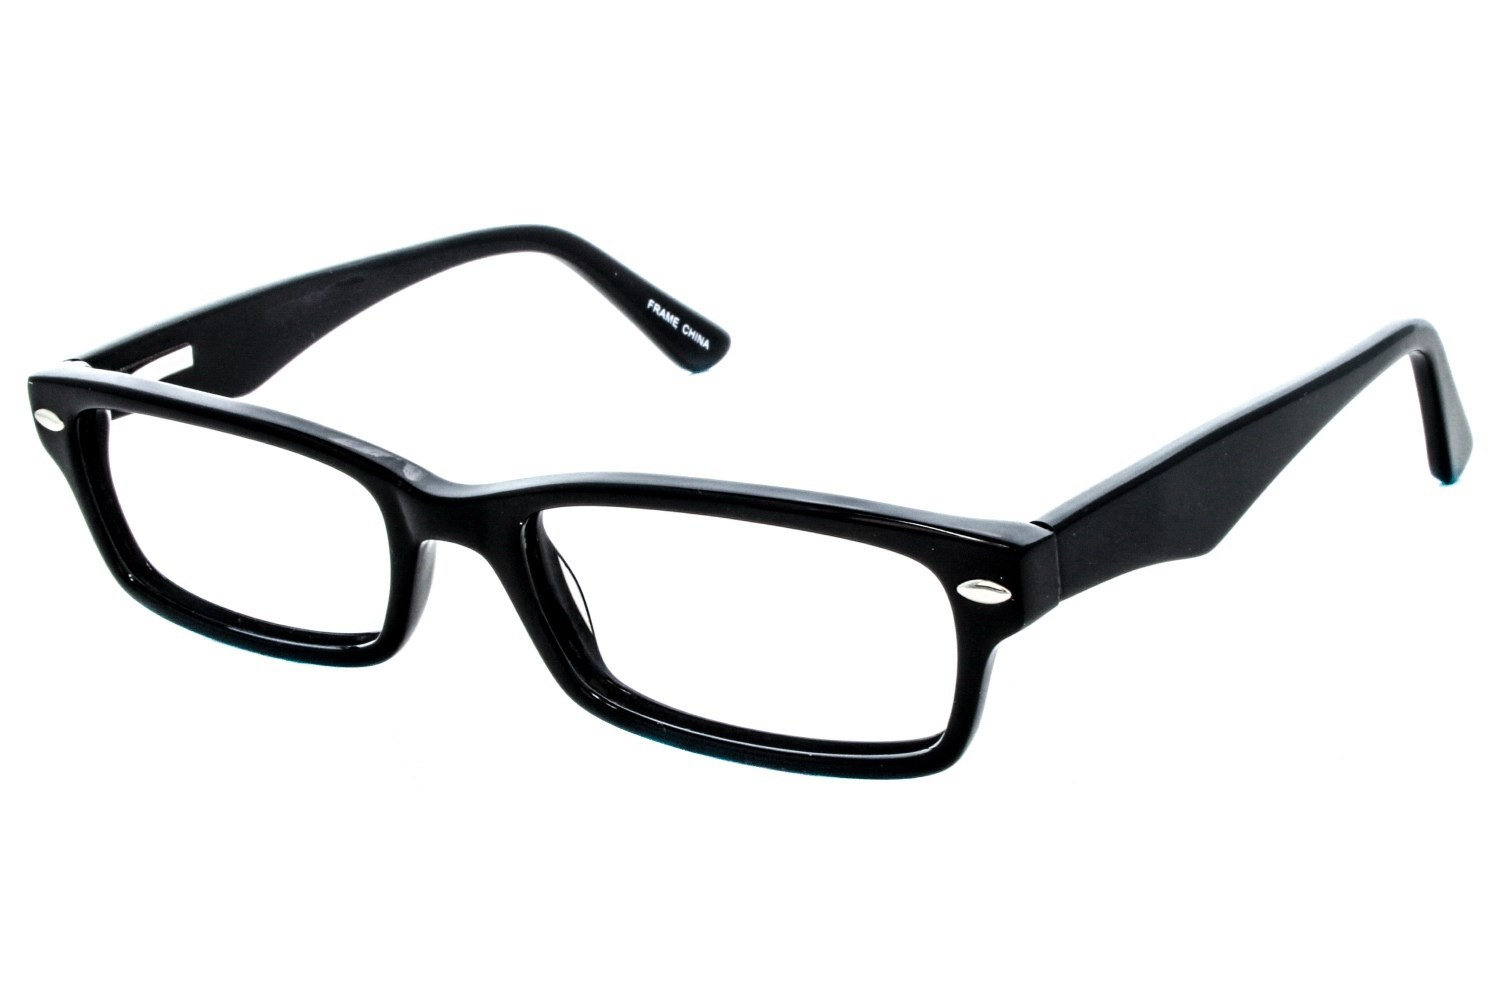 c2b77b7069cb Lunettos Rascal Prescription Eyeglasses - youngestoffashionistas